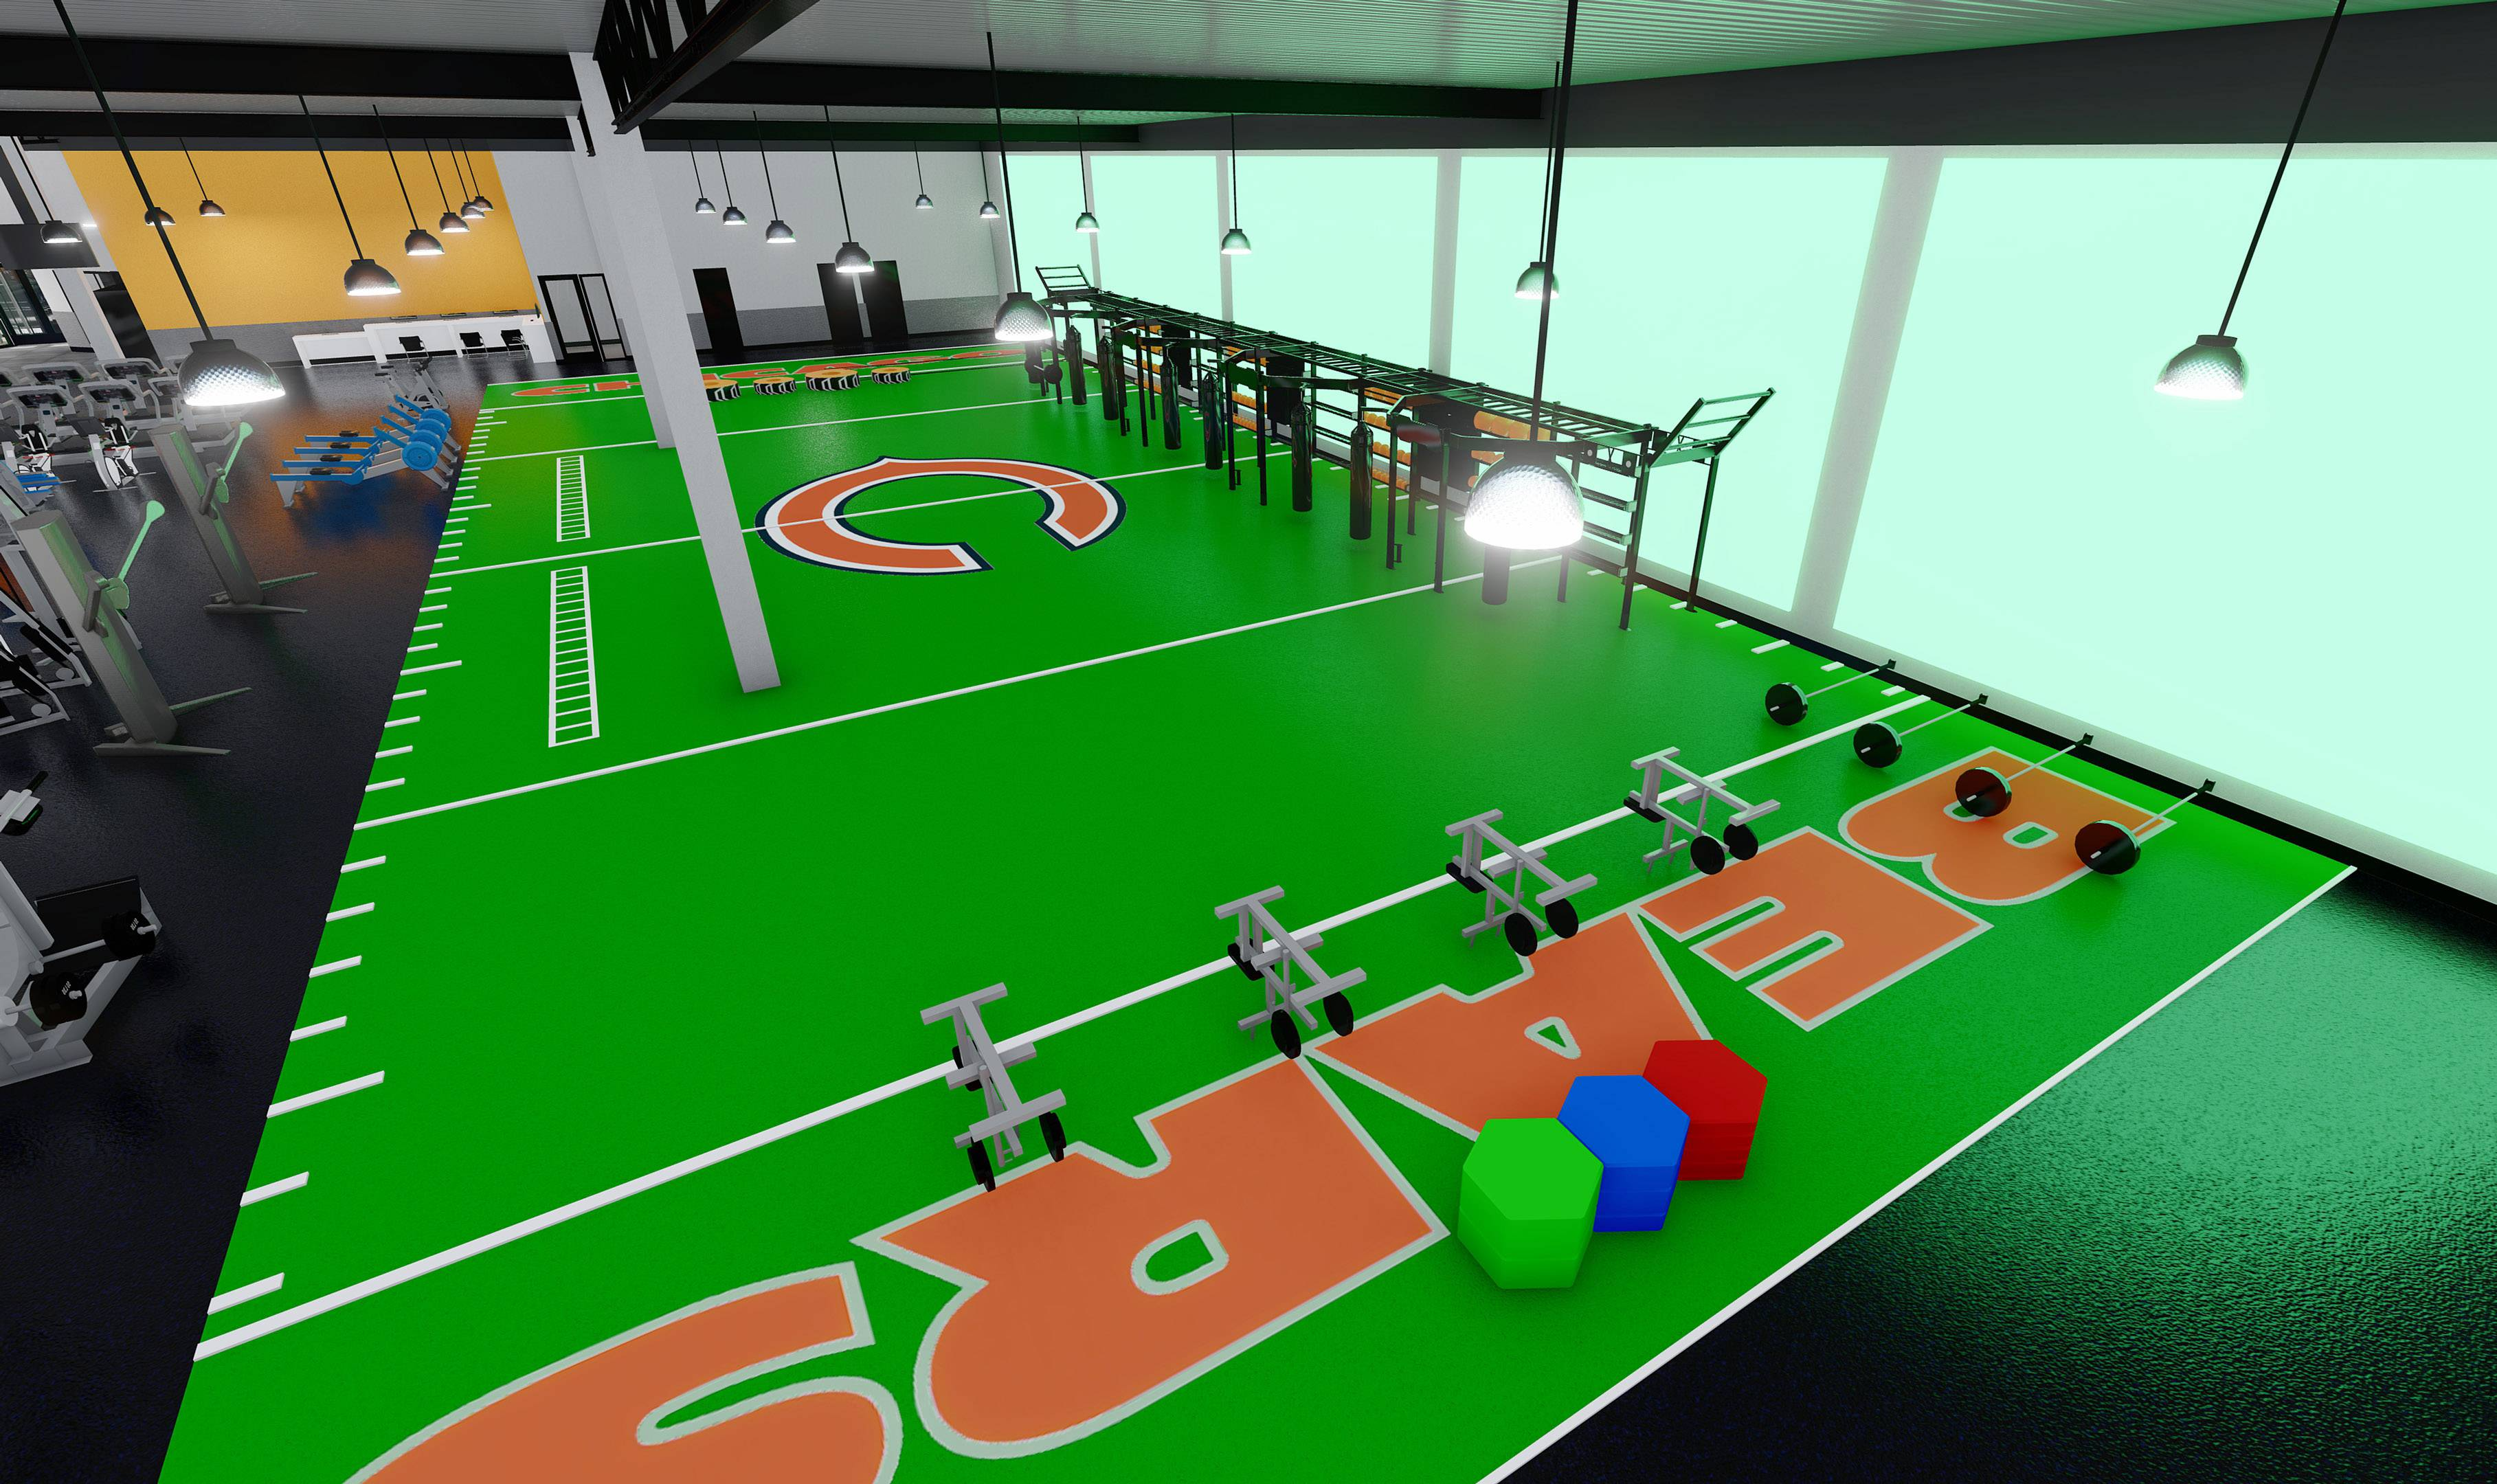 Work begins on Bears-themed fitness center in Vernon Hills